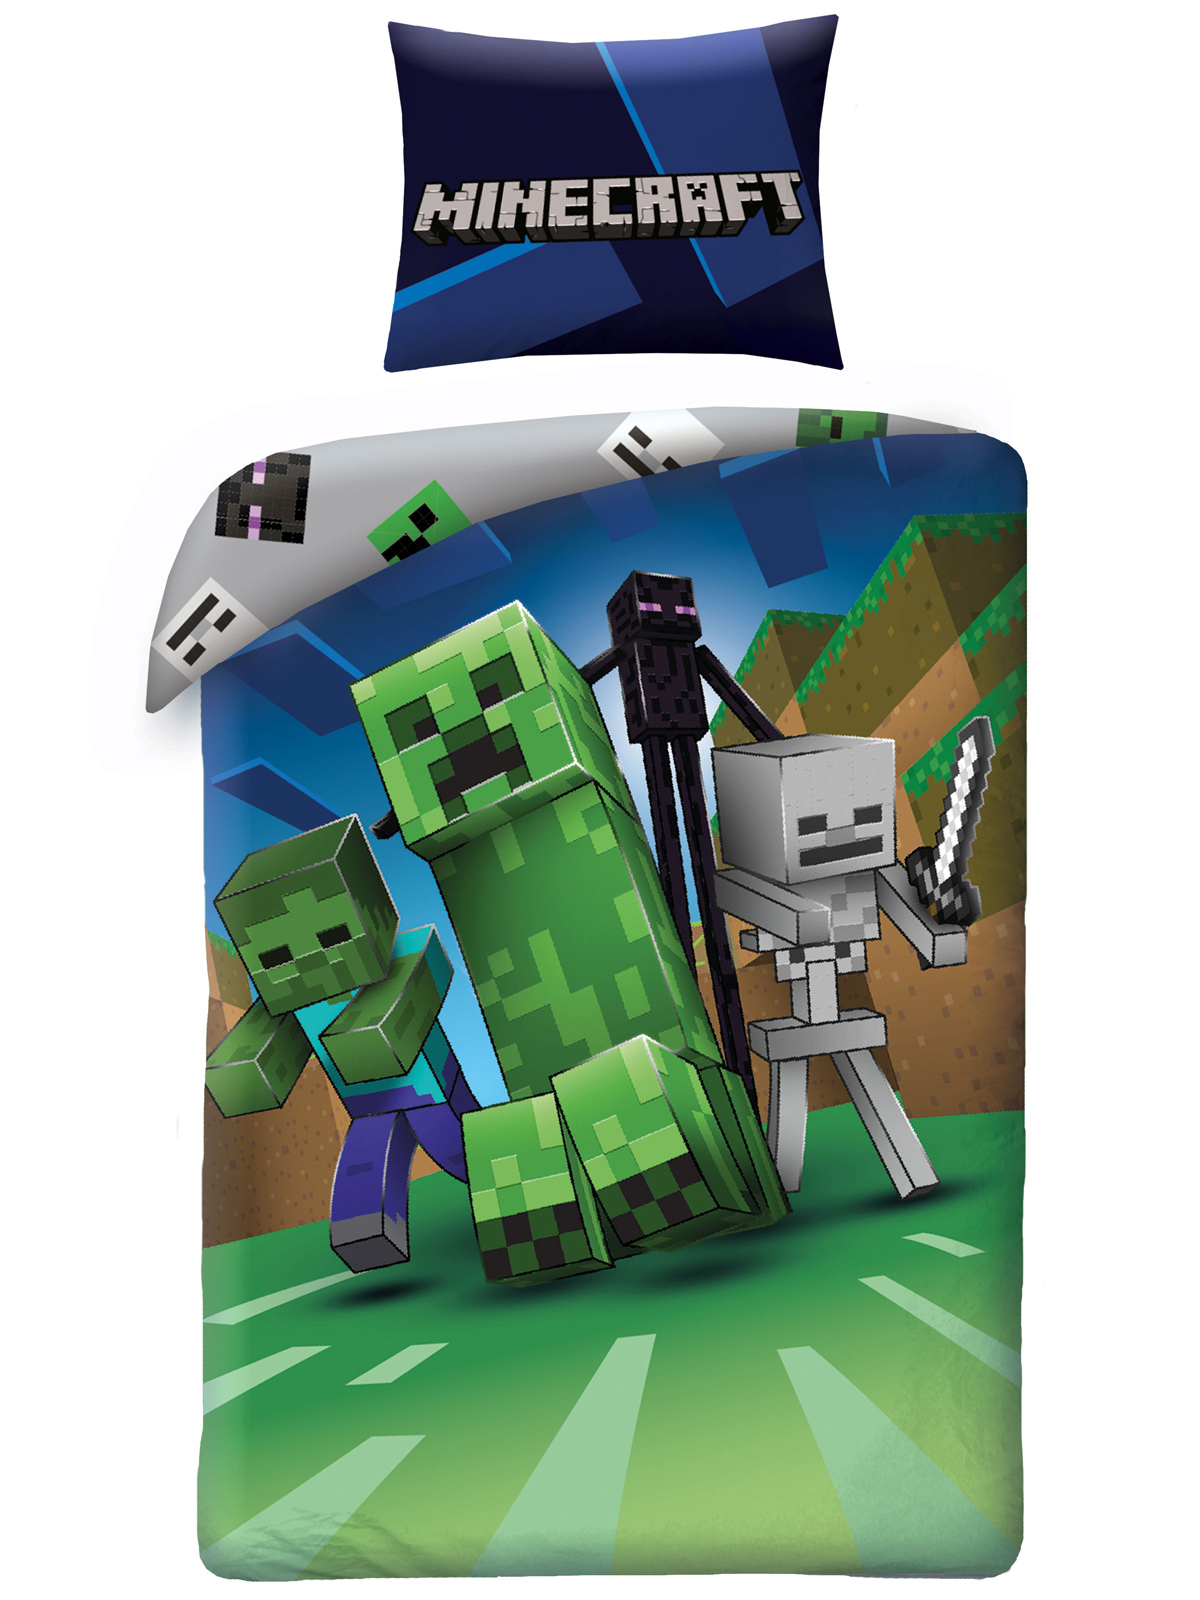 Minecraft Enderman Single Cotton Duvet Cover Set - European Size